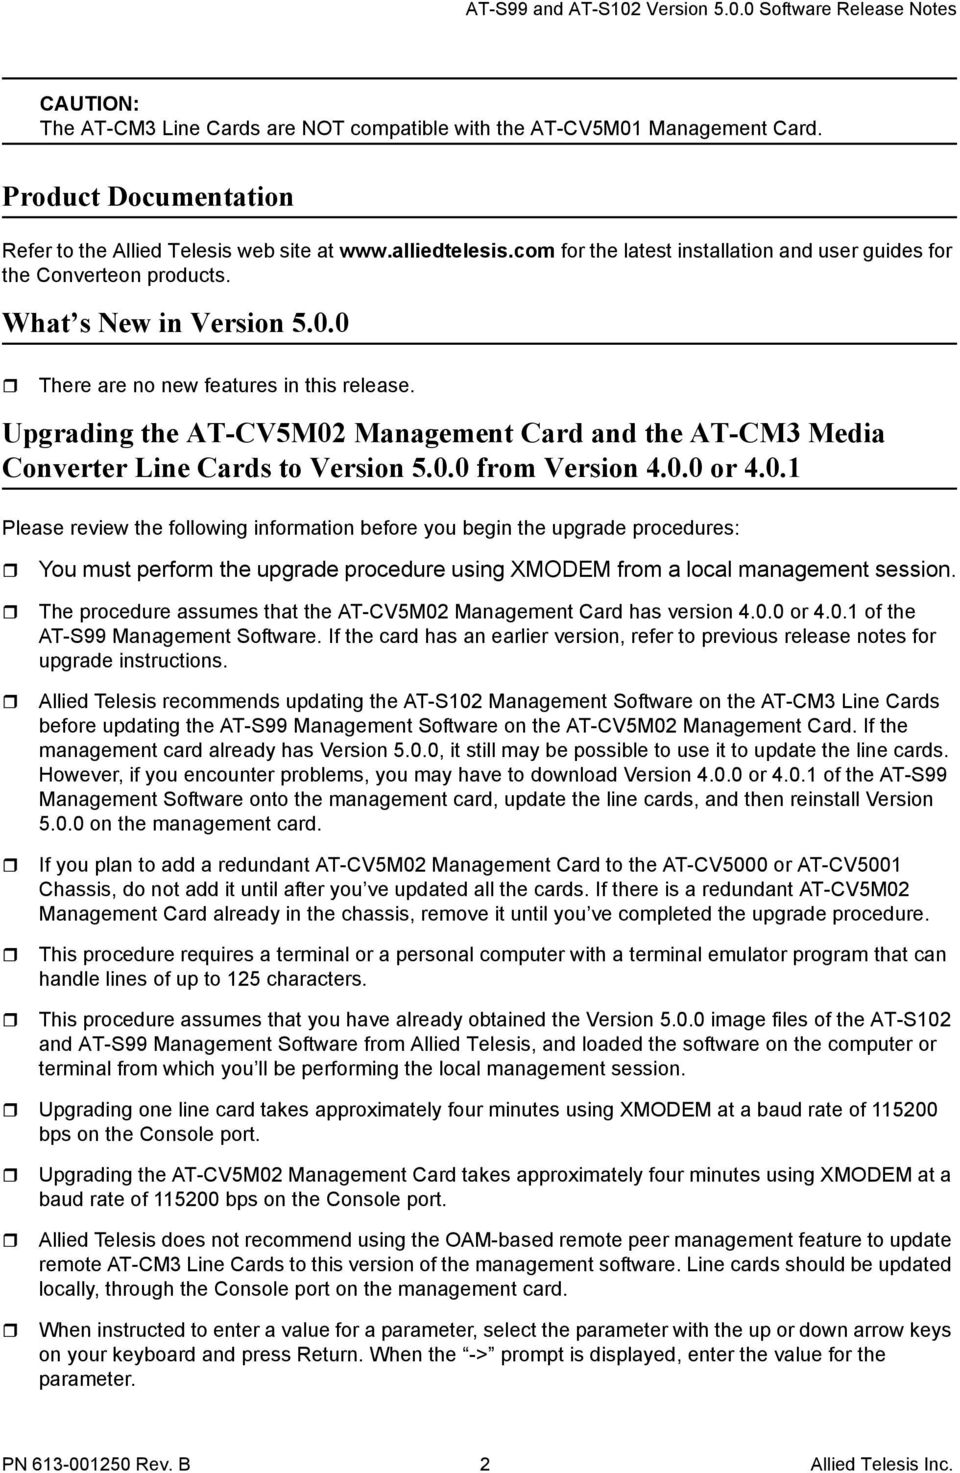 Upgrading the AT-CV5M02 Management Card and the AT-CM3 Media Converter Line Cards to Version 5.0.0 from Version 4.0.0 or 4.0.1 Please review the following information before you begin the upgrade procedures: You must perform the upgrade procedure using XMODEM from a local management session.